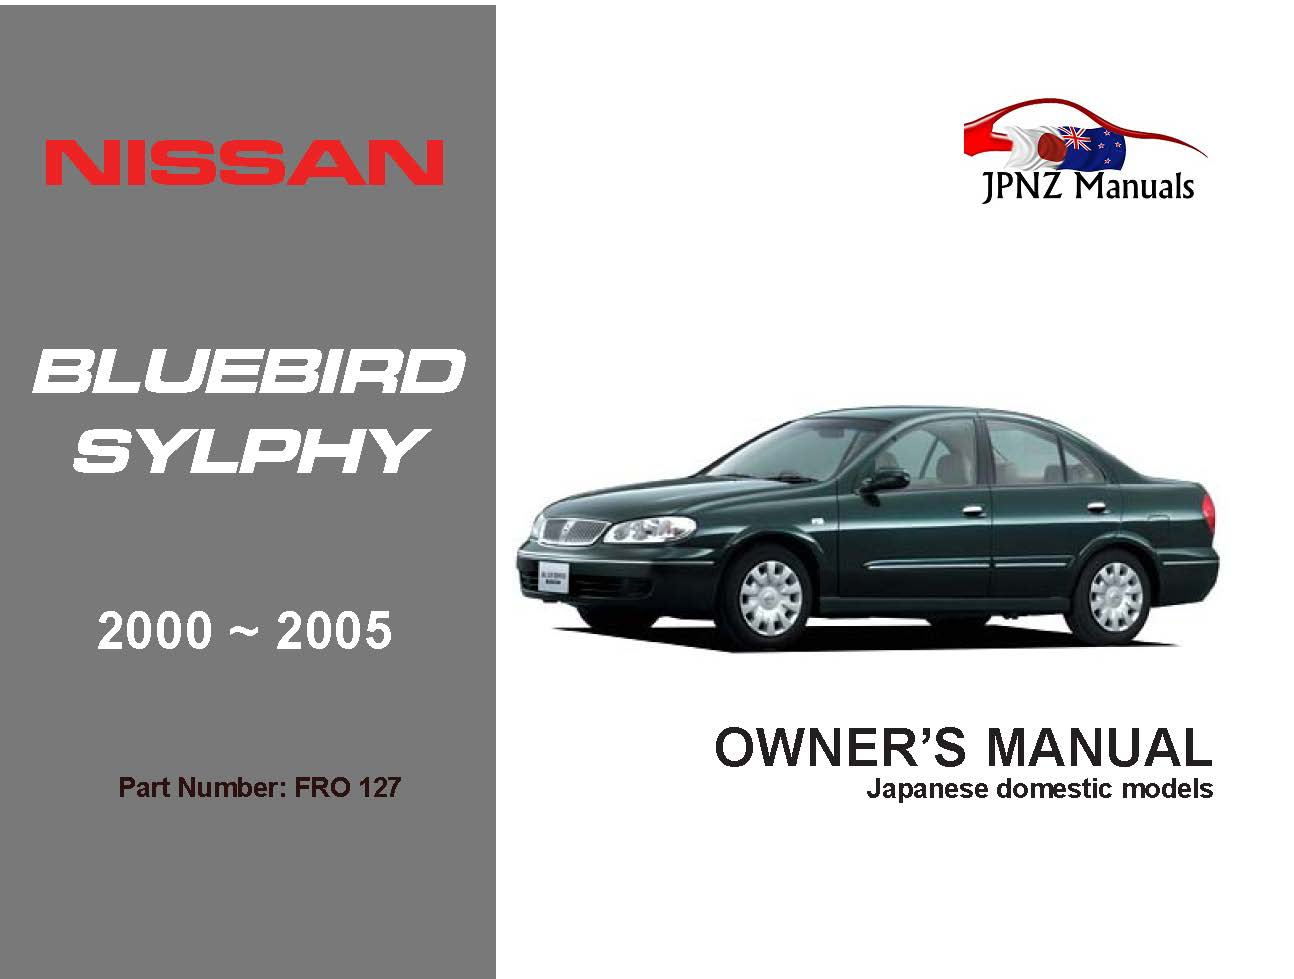 Nissan - Bluebird Sylphy Car Owners User Manual In English | 2000 - 2005